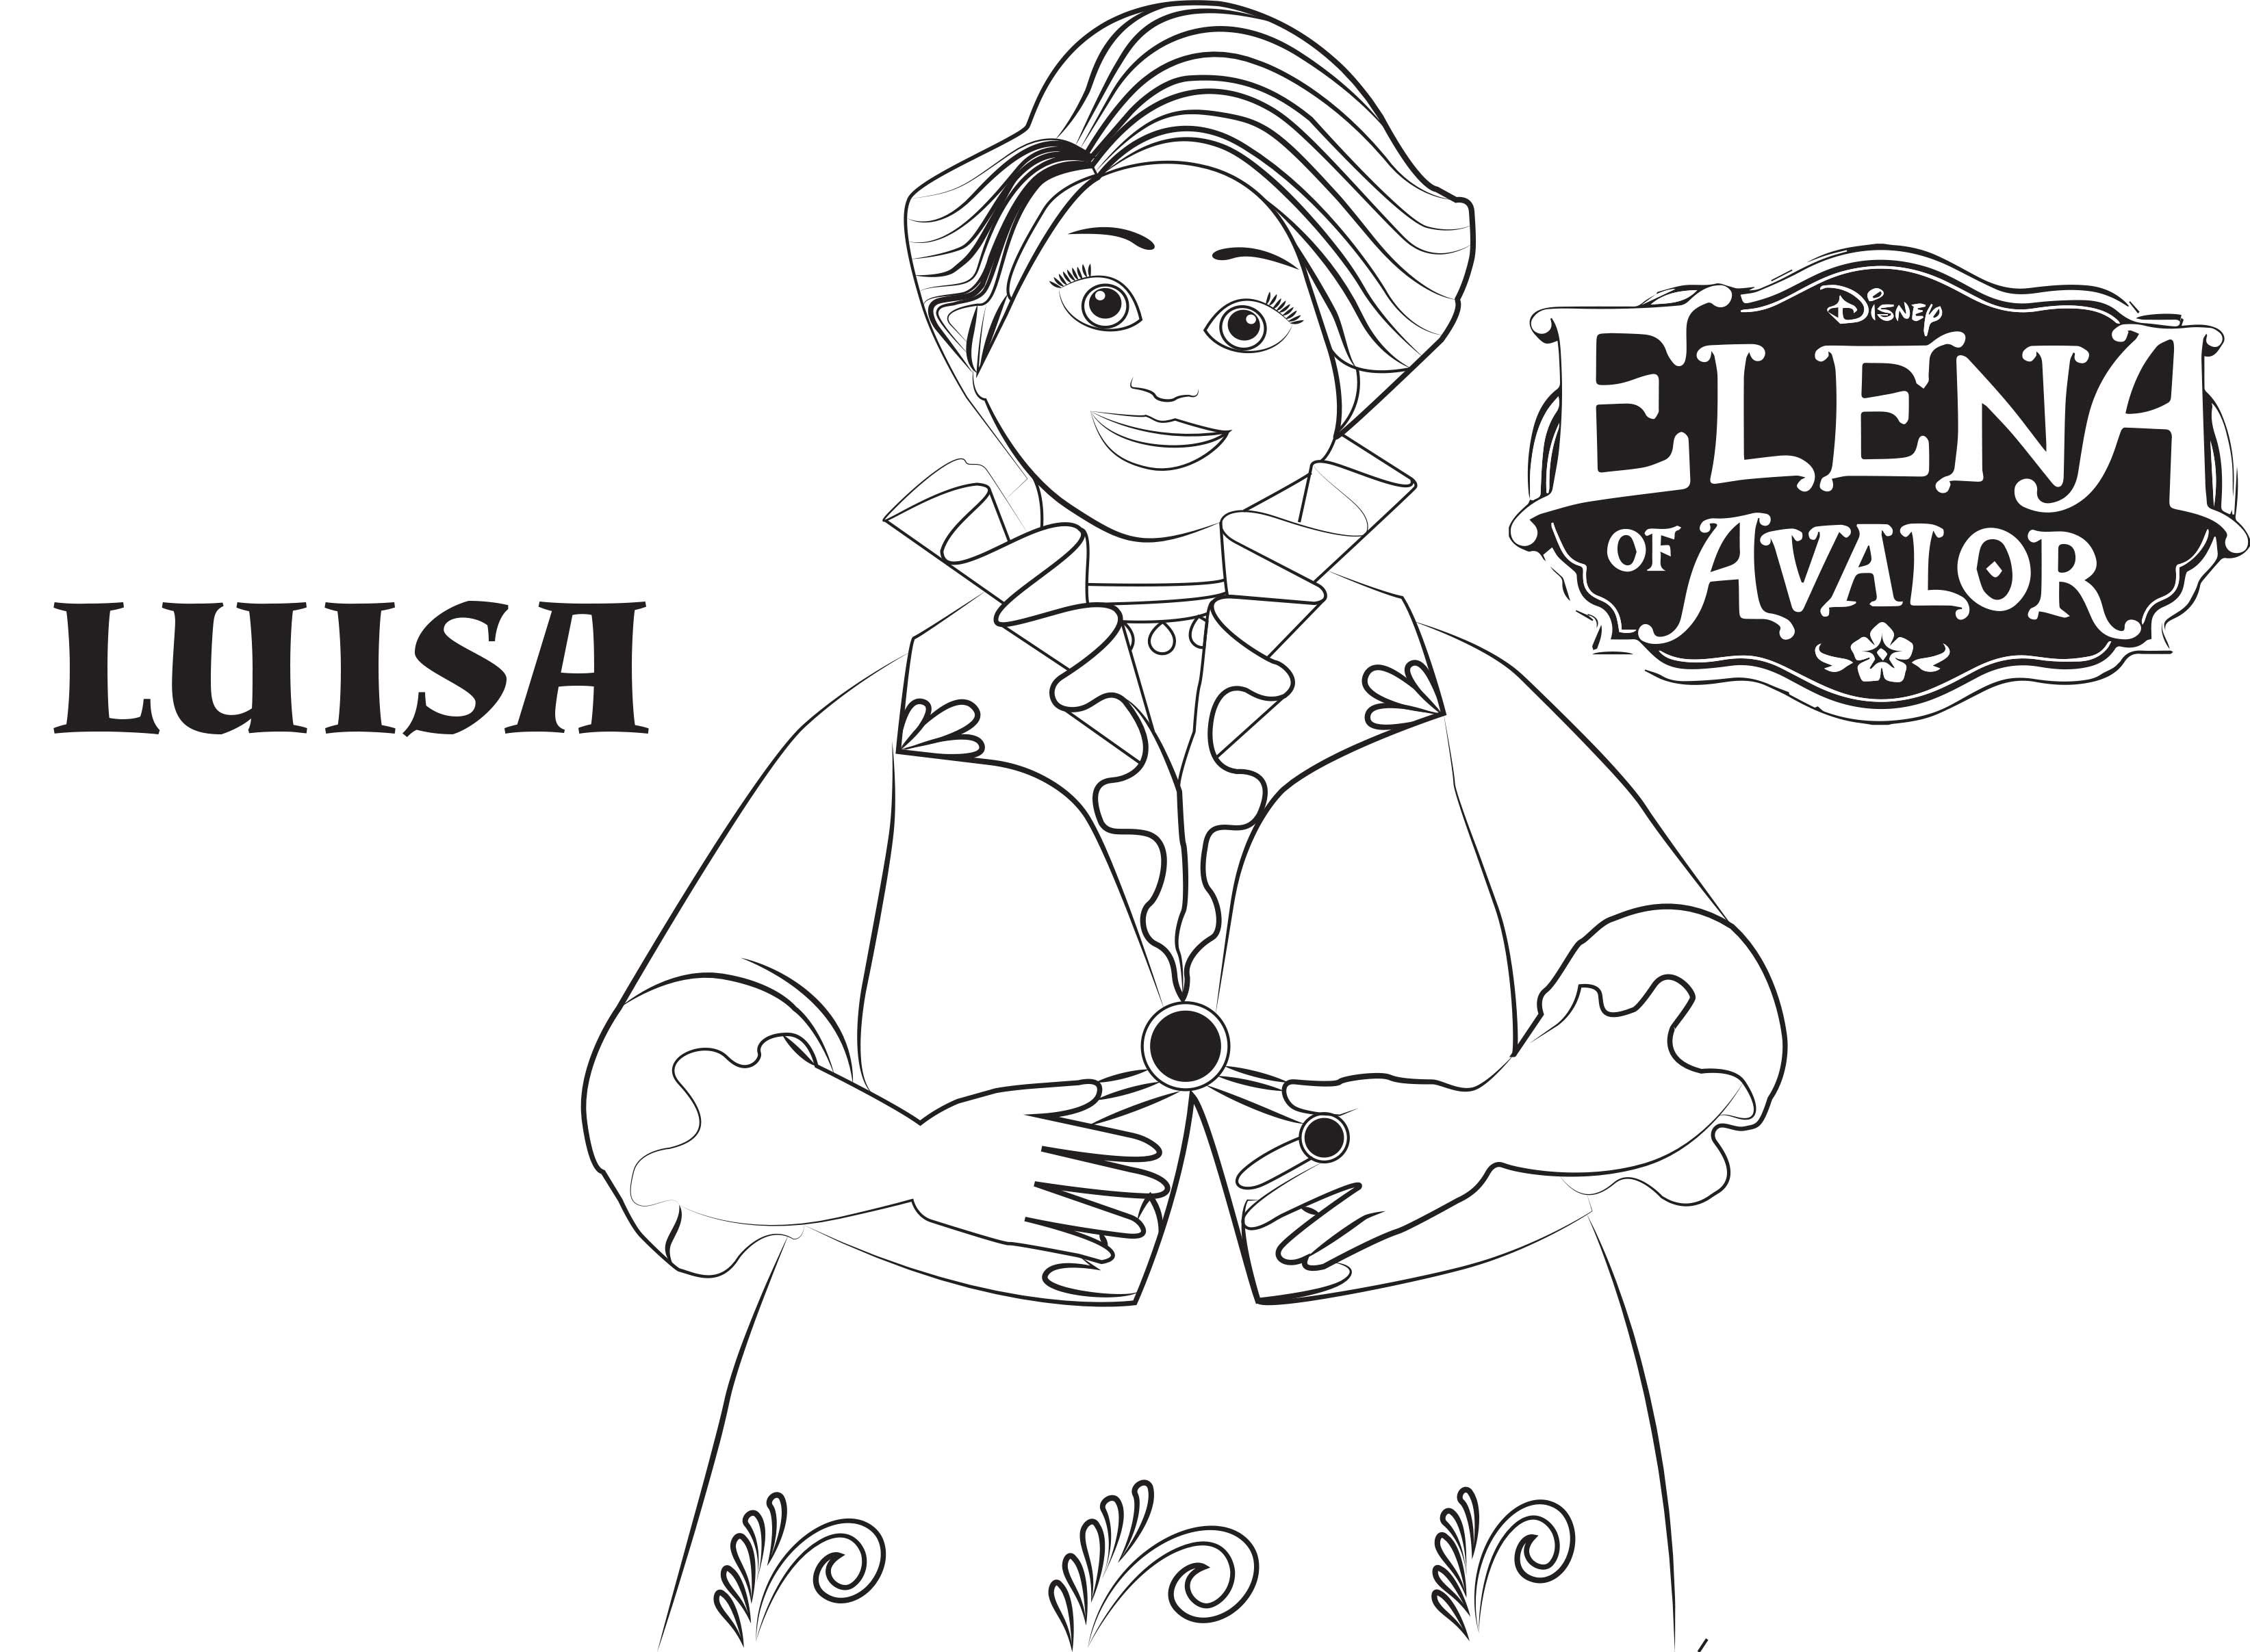 disney elena of avalor free printable coloring page free